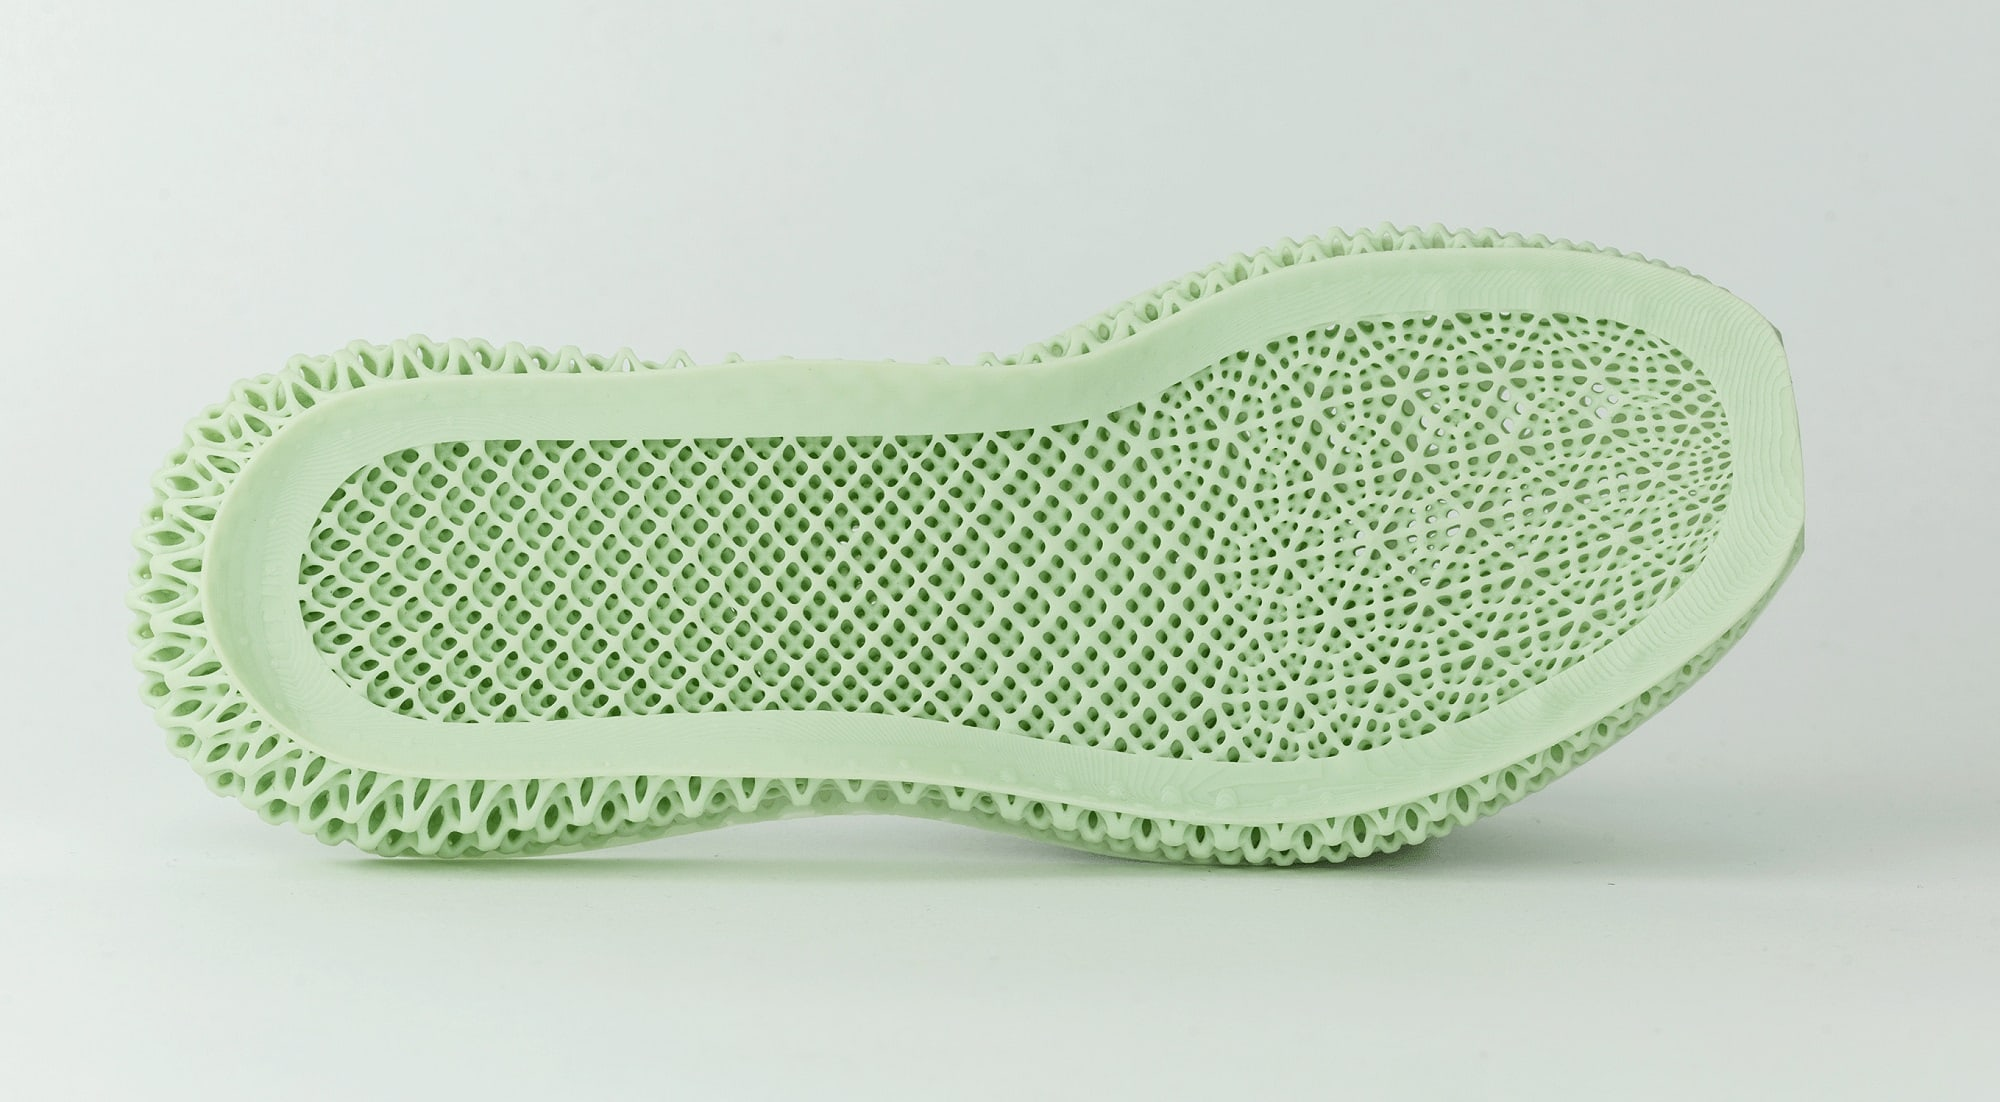 3D Printing in the Footwear Industry